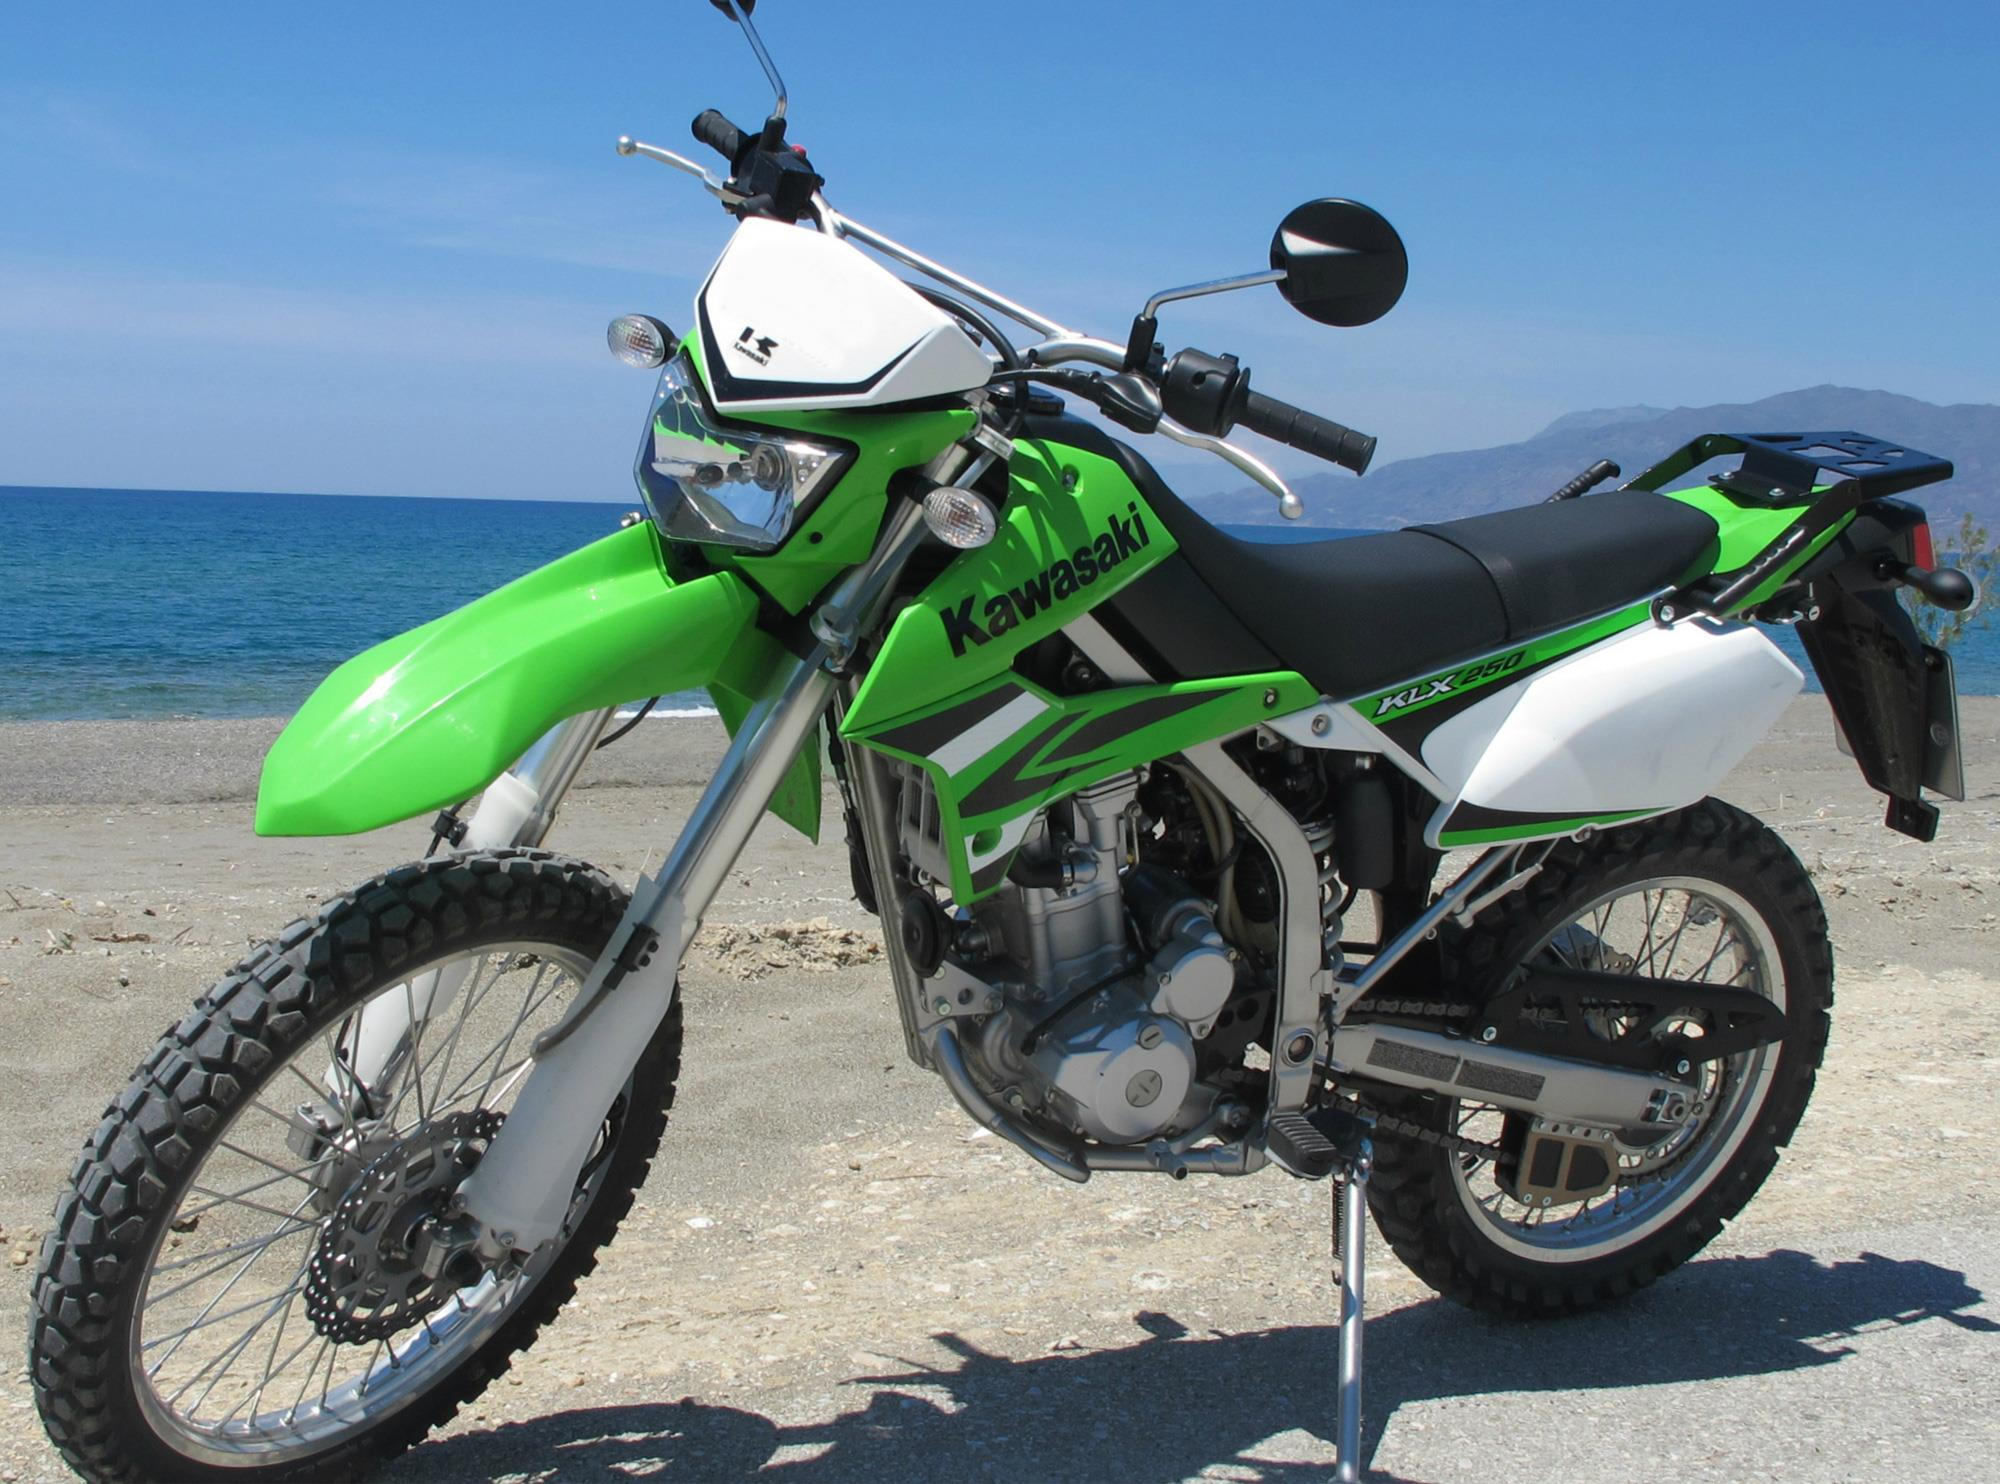 Category B2 - Kawasaki KLX